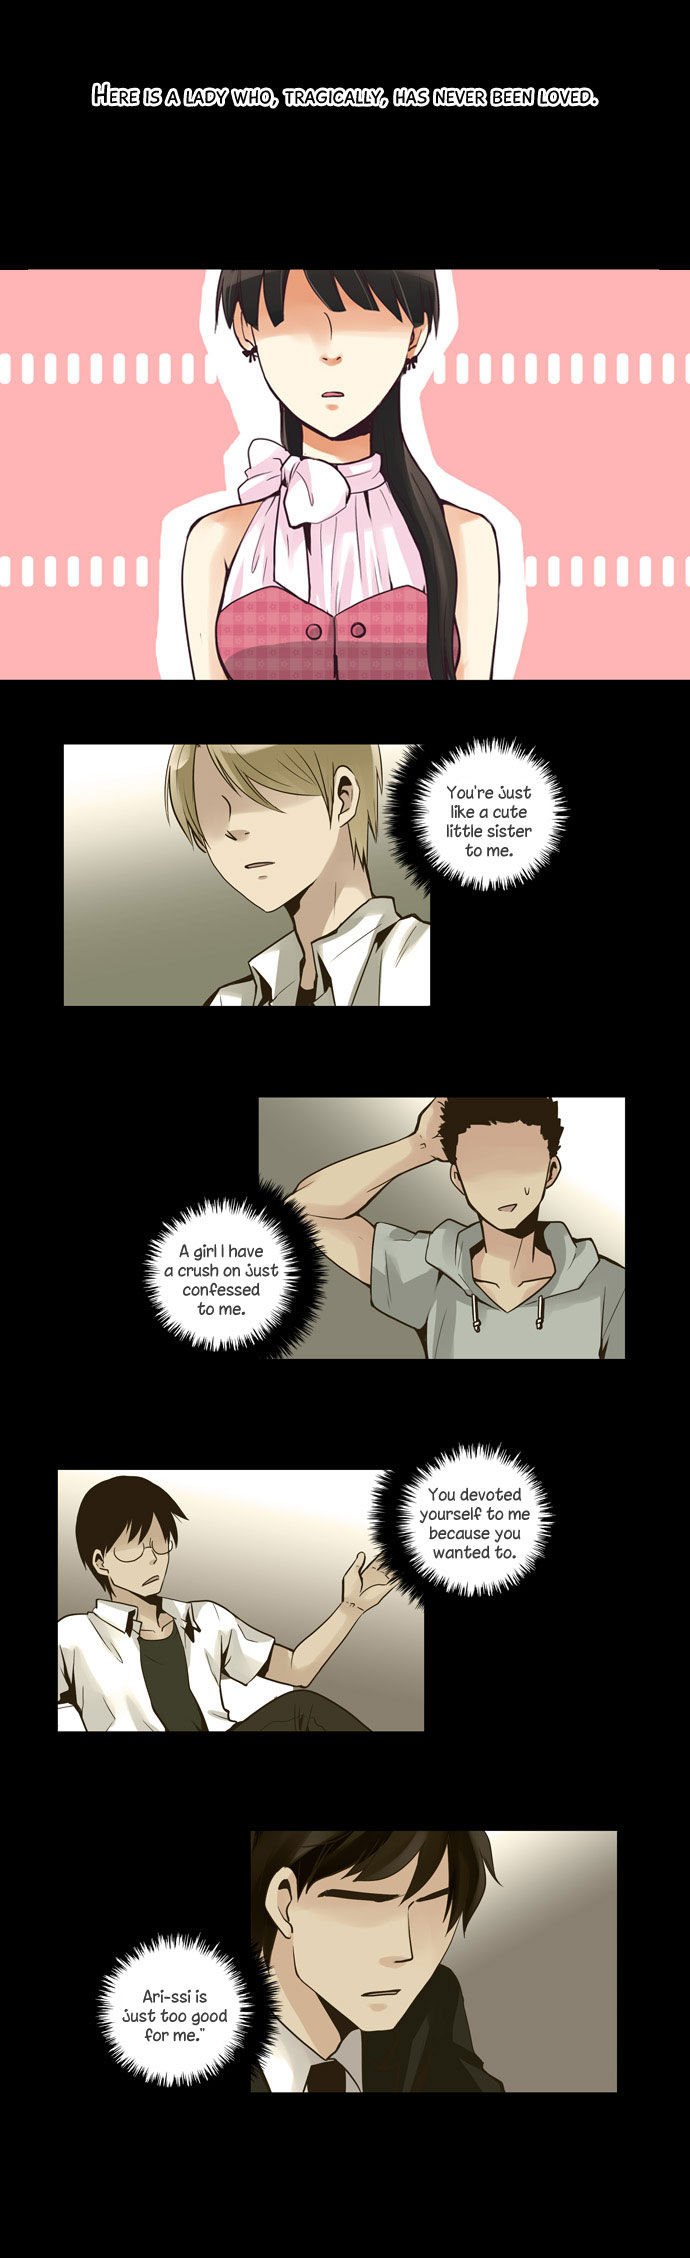 Dear, Only You Don't Know! 23 Page 2